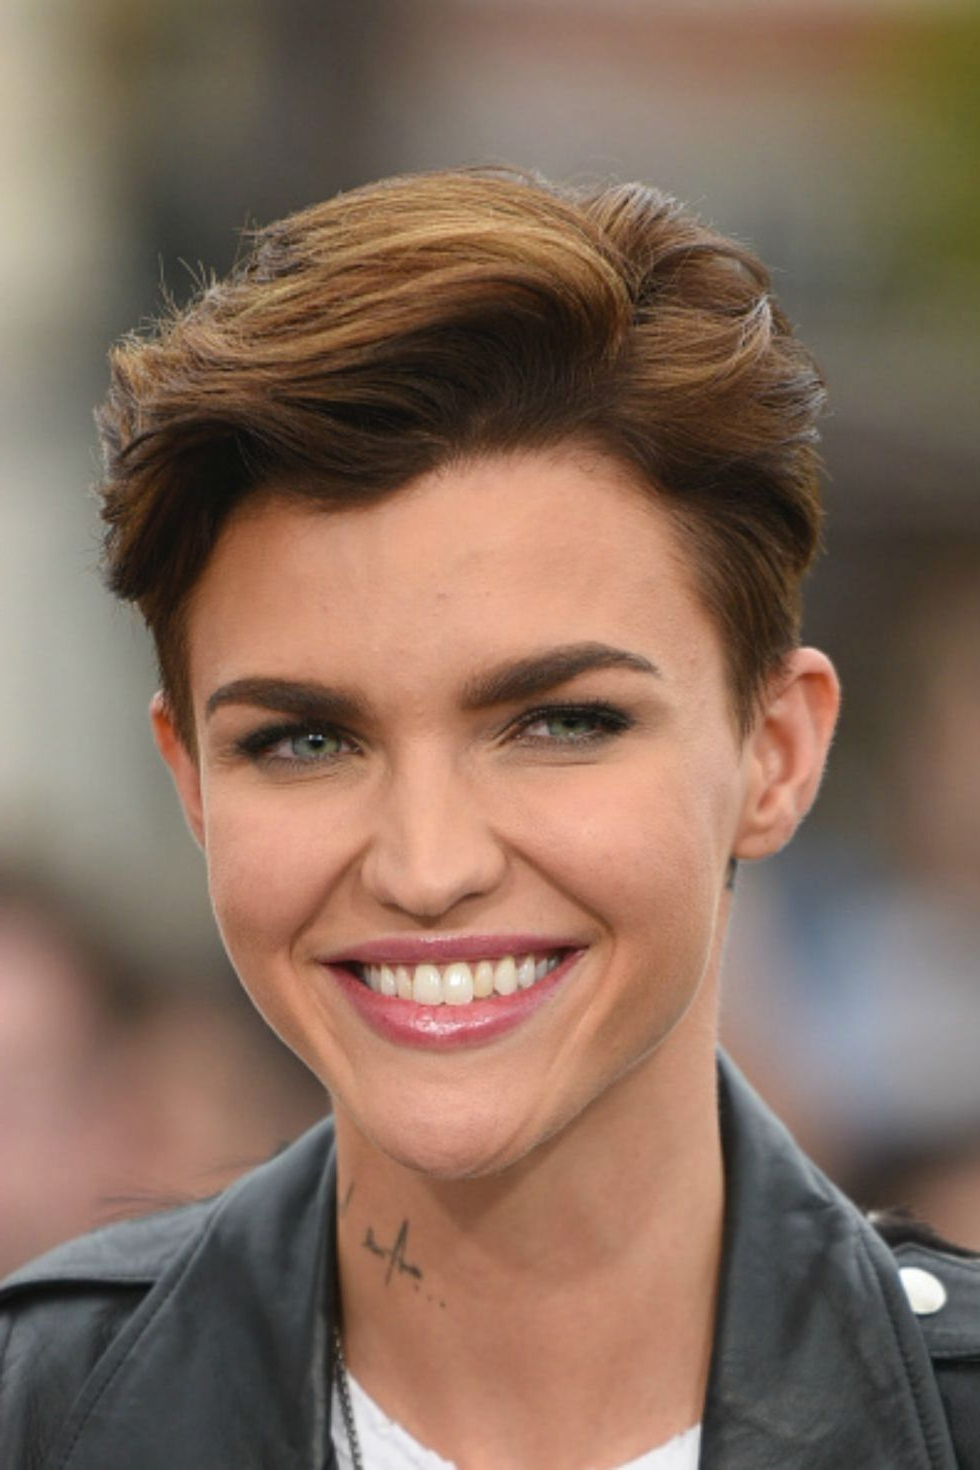 30 Short Hairstyles For Thick Hair 2017 – Women's Haircuts For For Pertaining To Short Hairstyles For Very Thick Hair (View 8 of 25)